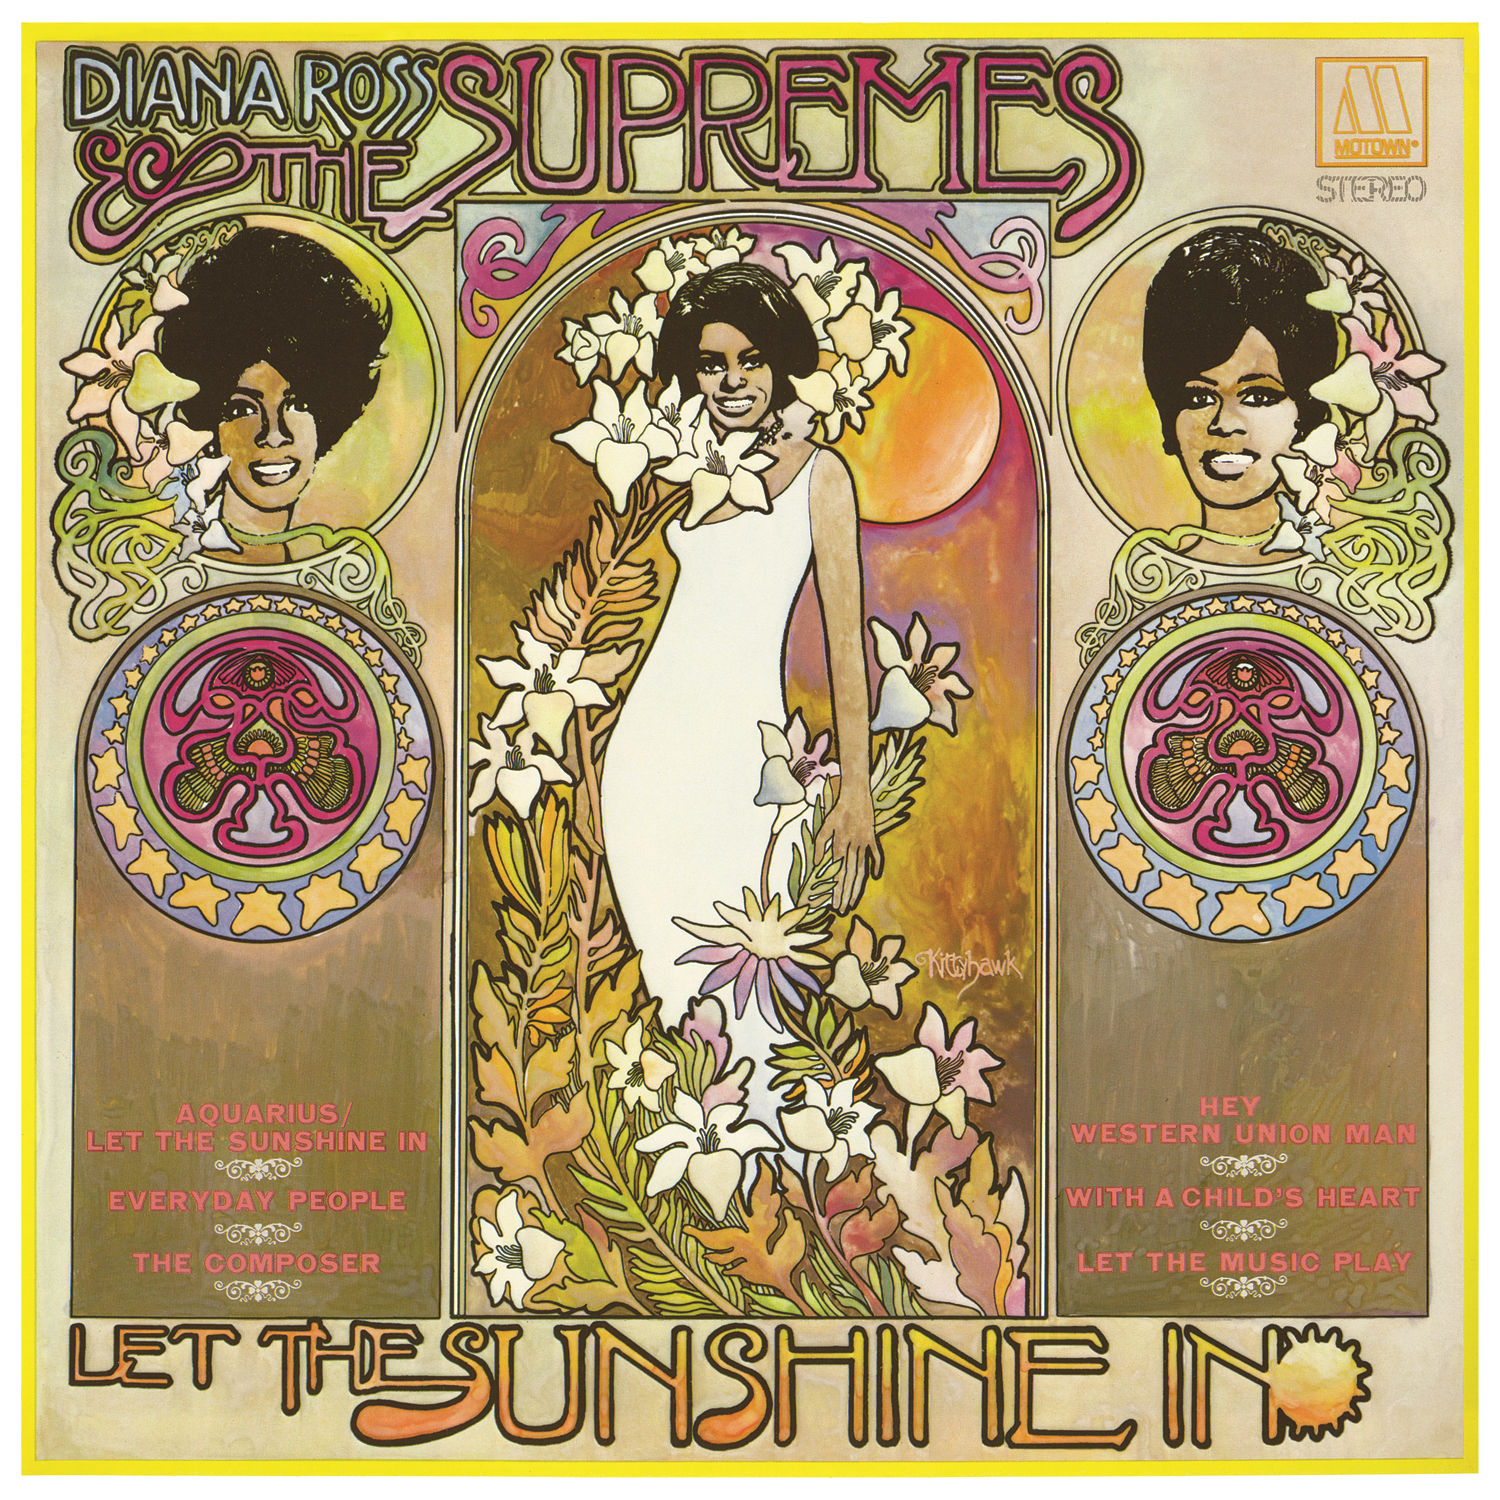 Art for I'm Livin' In Shame - #98 for 1969 by Diana Ross & The Supremes